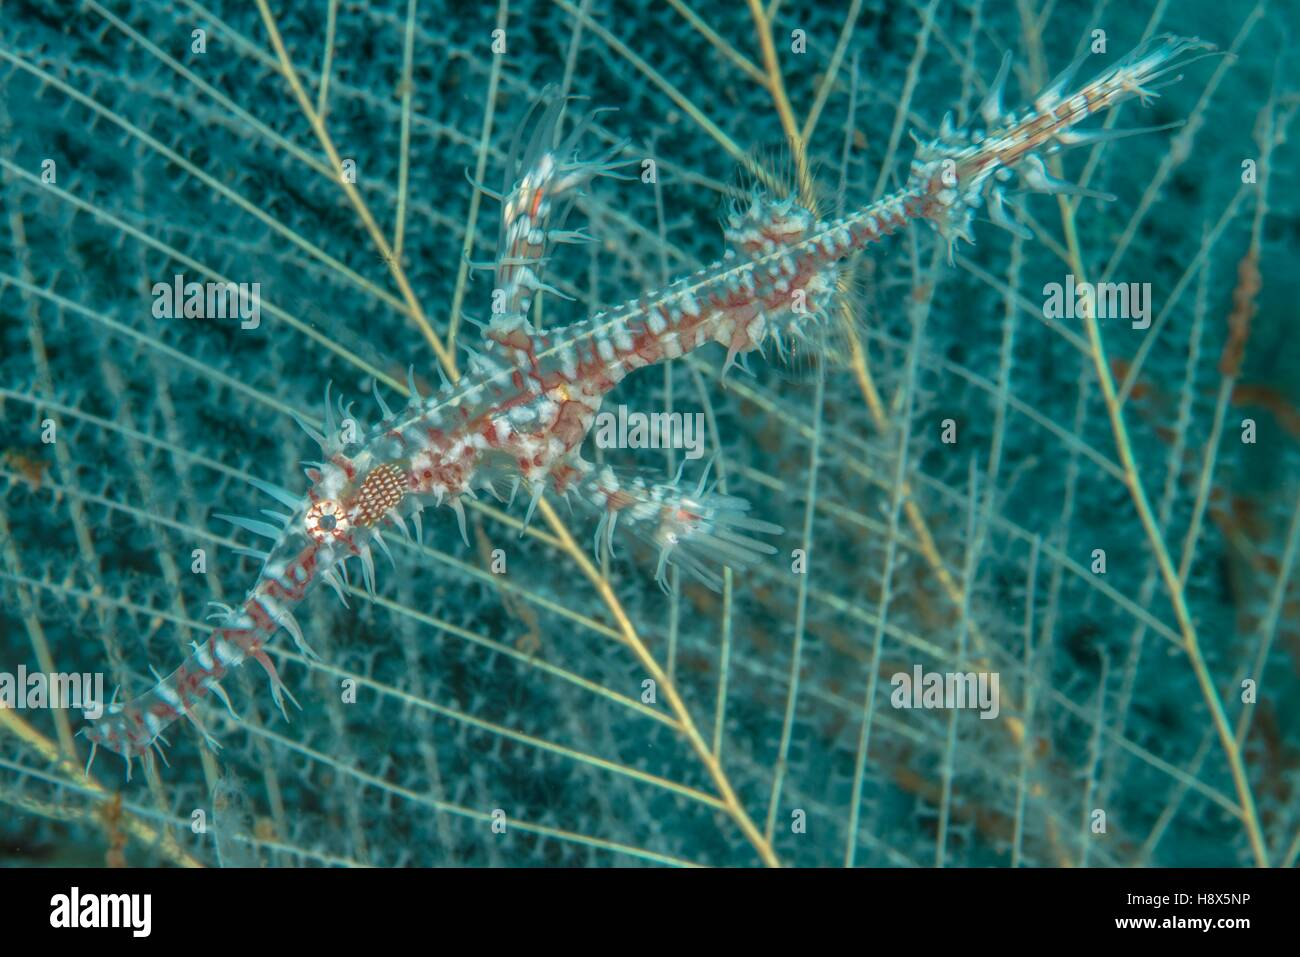 Harlequin ghost pipefish (Solenostomus paradoxus), Bali, Indonesia - Stock Image